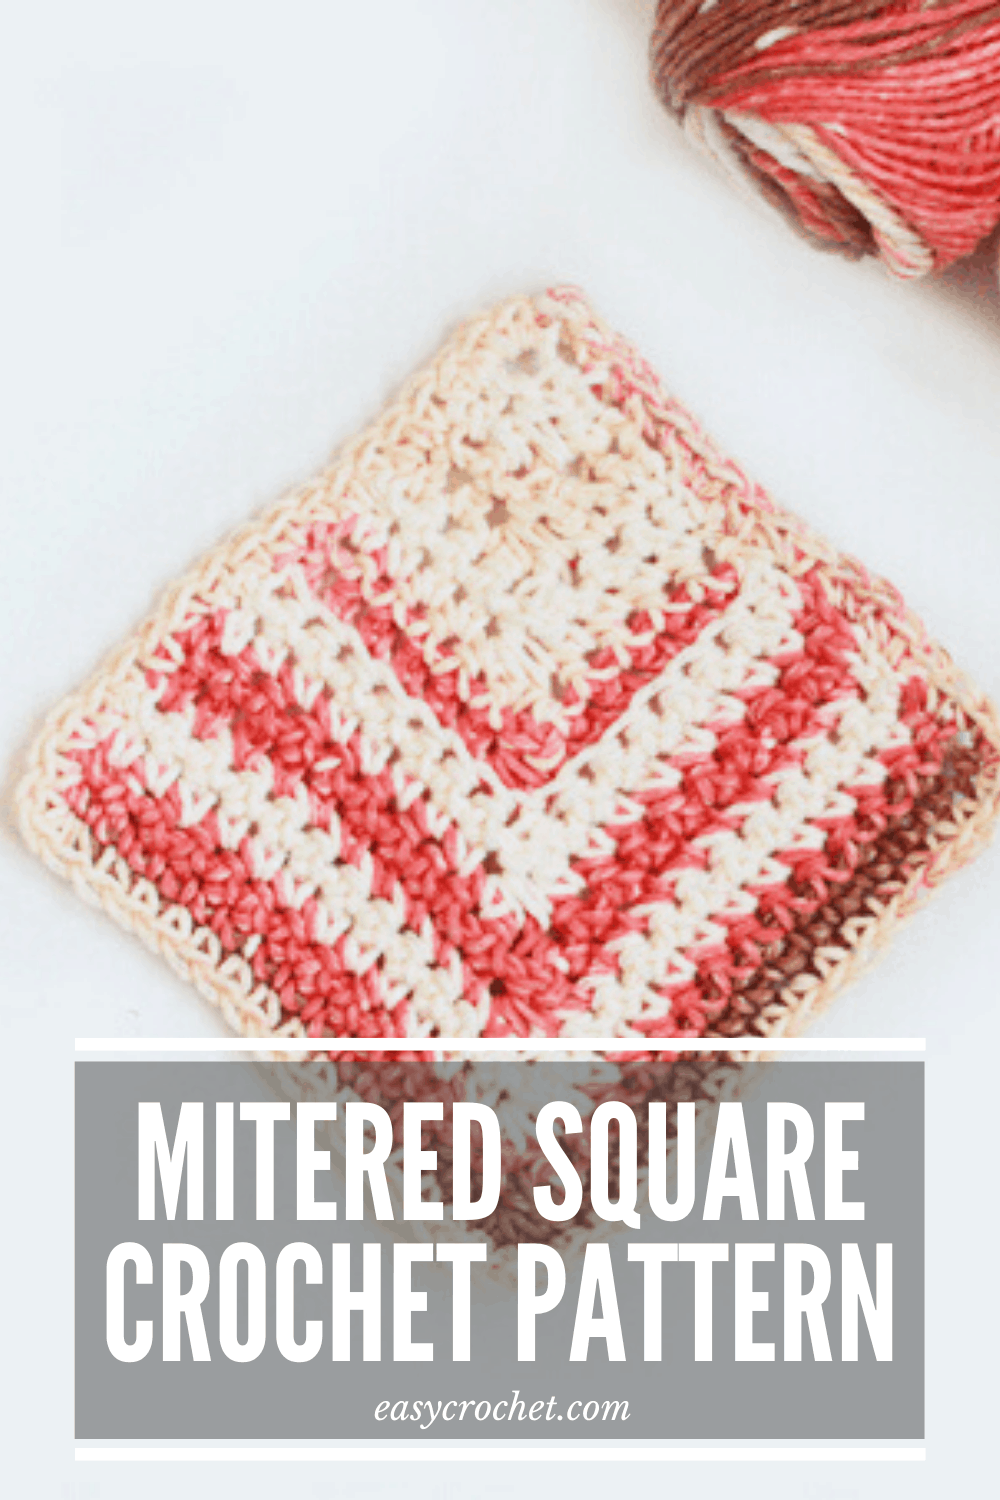 Use this free crochet pattern to create this easy mitered crochet square with this free pattern from Easy Crochet. easycrochet.com via @easycrochetcom